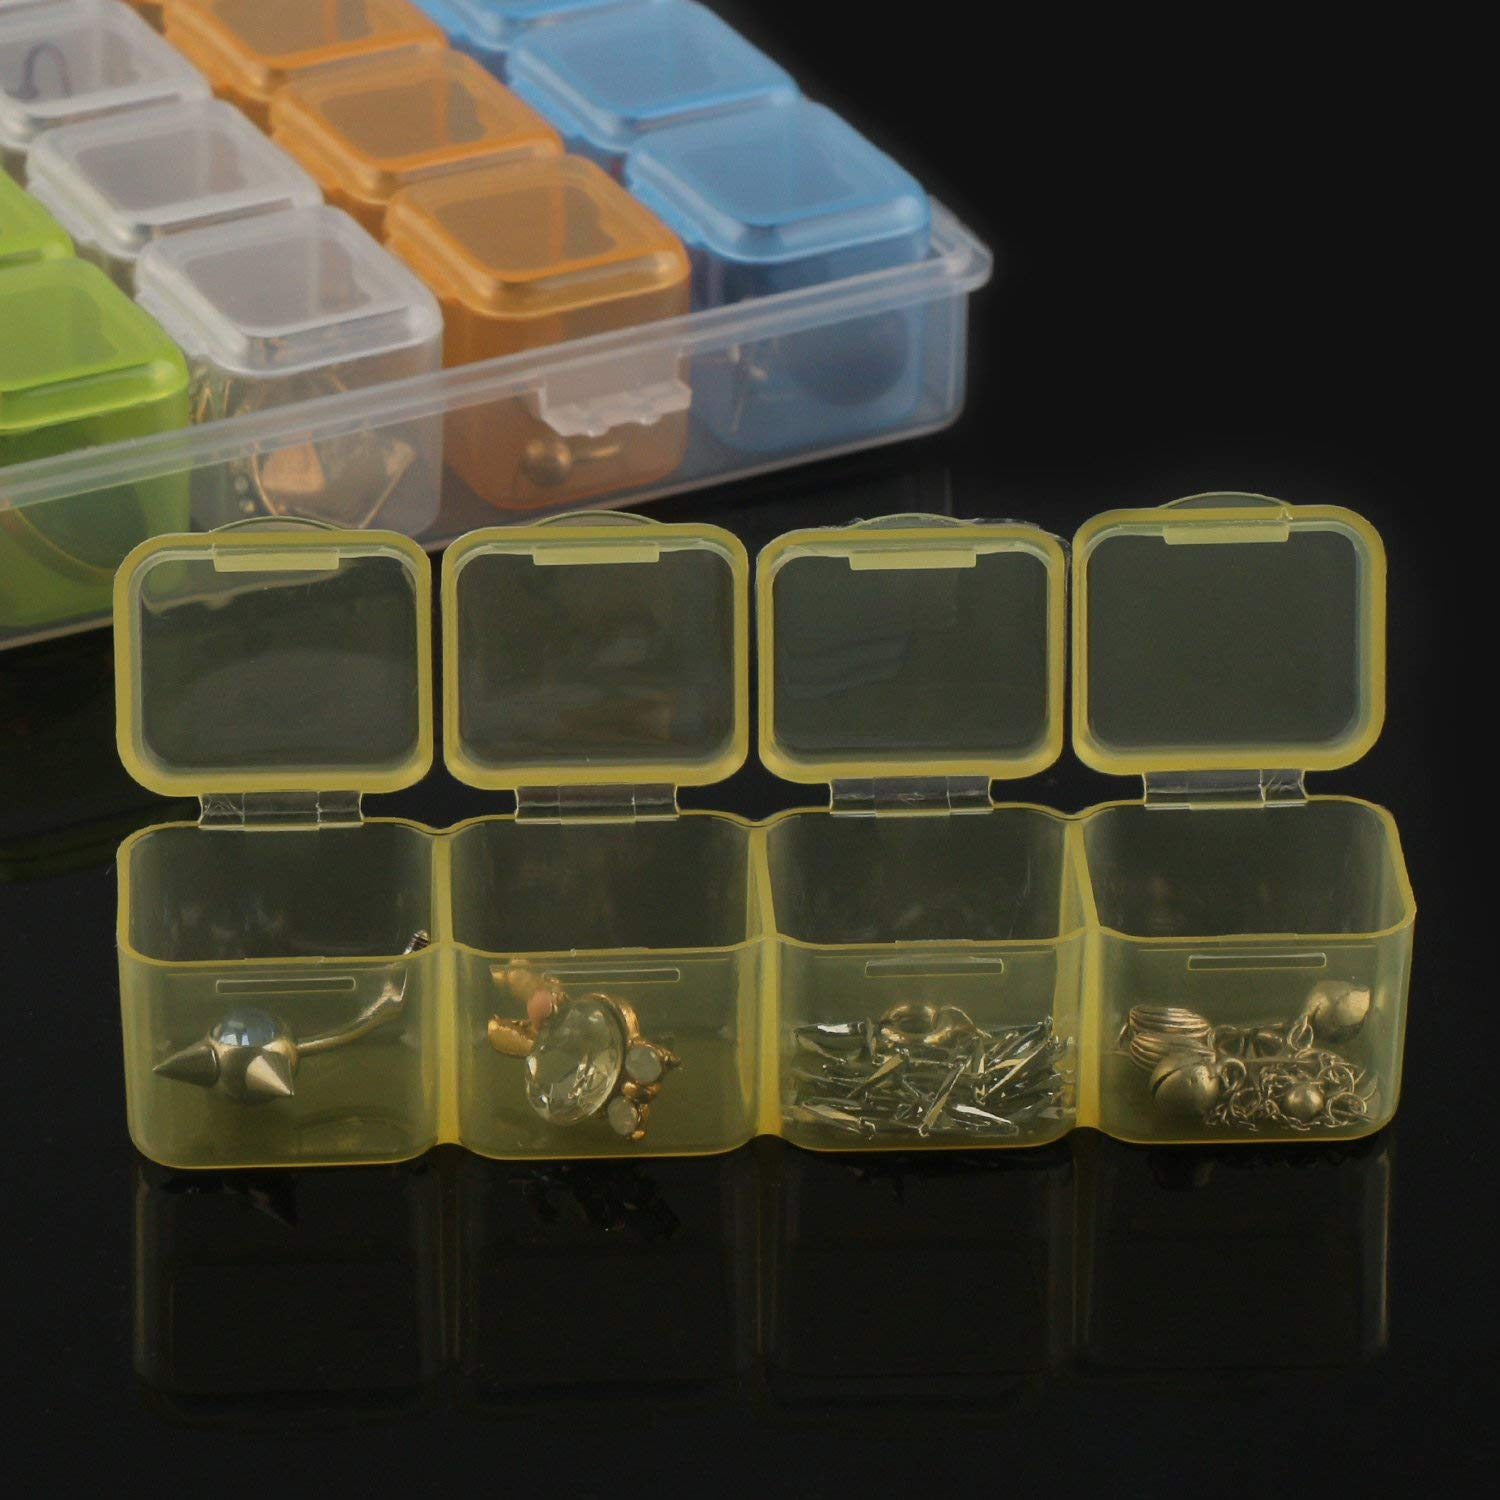 Clear Bead Container 28 Compartments with Secure Lids Transparent Jewelry Organizer for Seeds Craft Making Accessories Removable Tiny Jewelry Storage Box